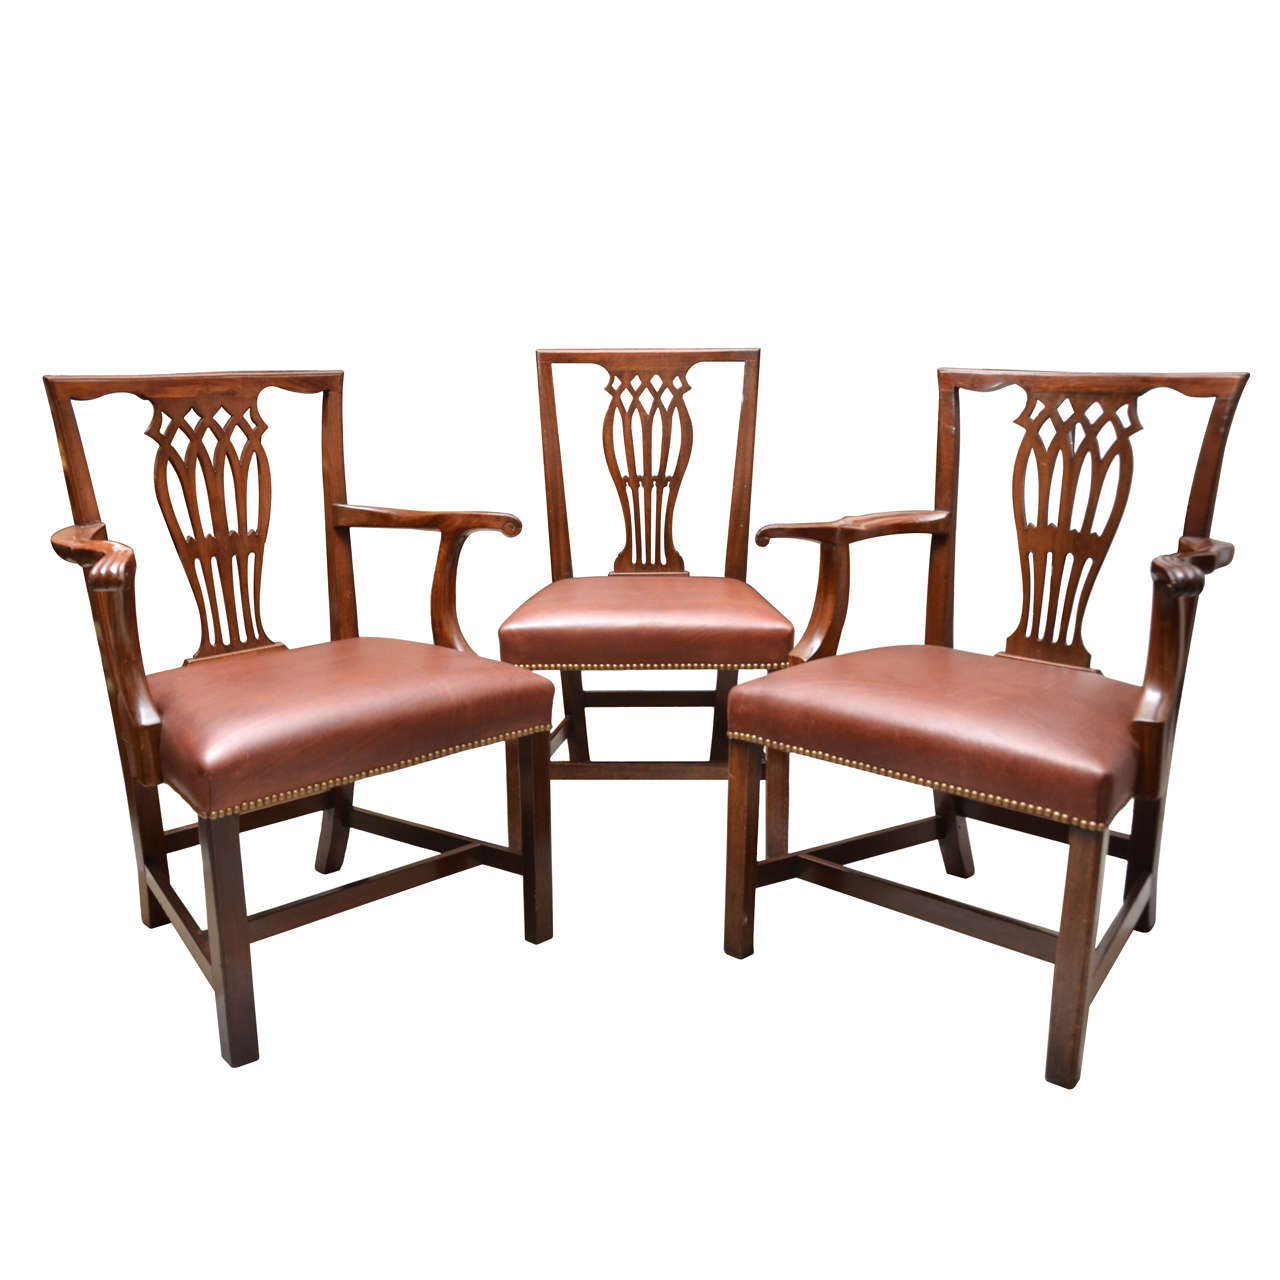 Late 18th-Early 19th Century English Set of 12 Mahogany Dining Chairs